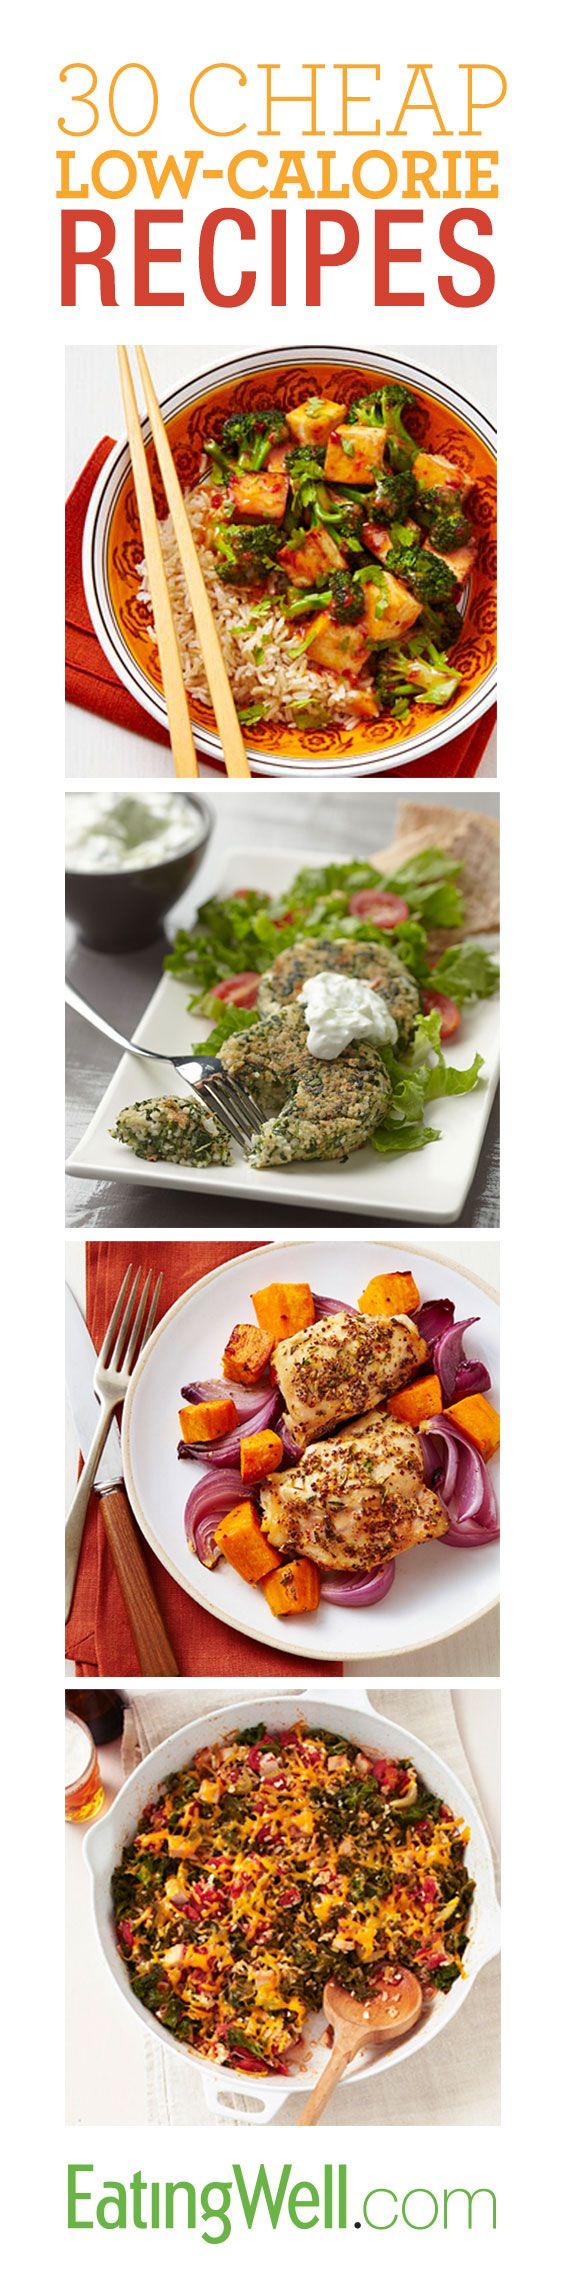 Save money and slim down with these 30 cheap diet recipes.